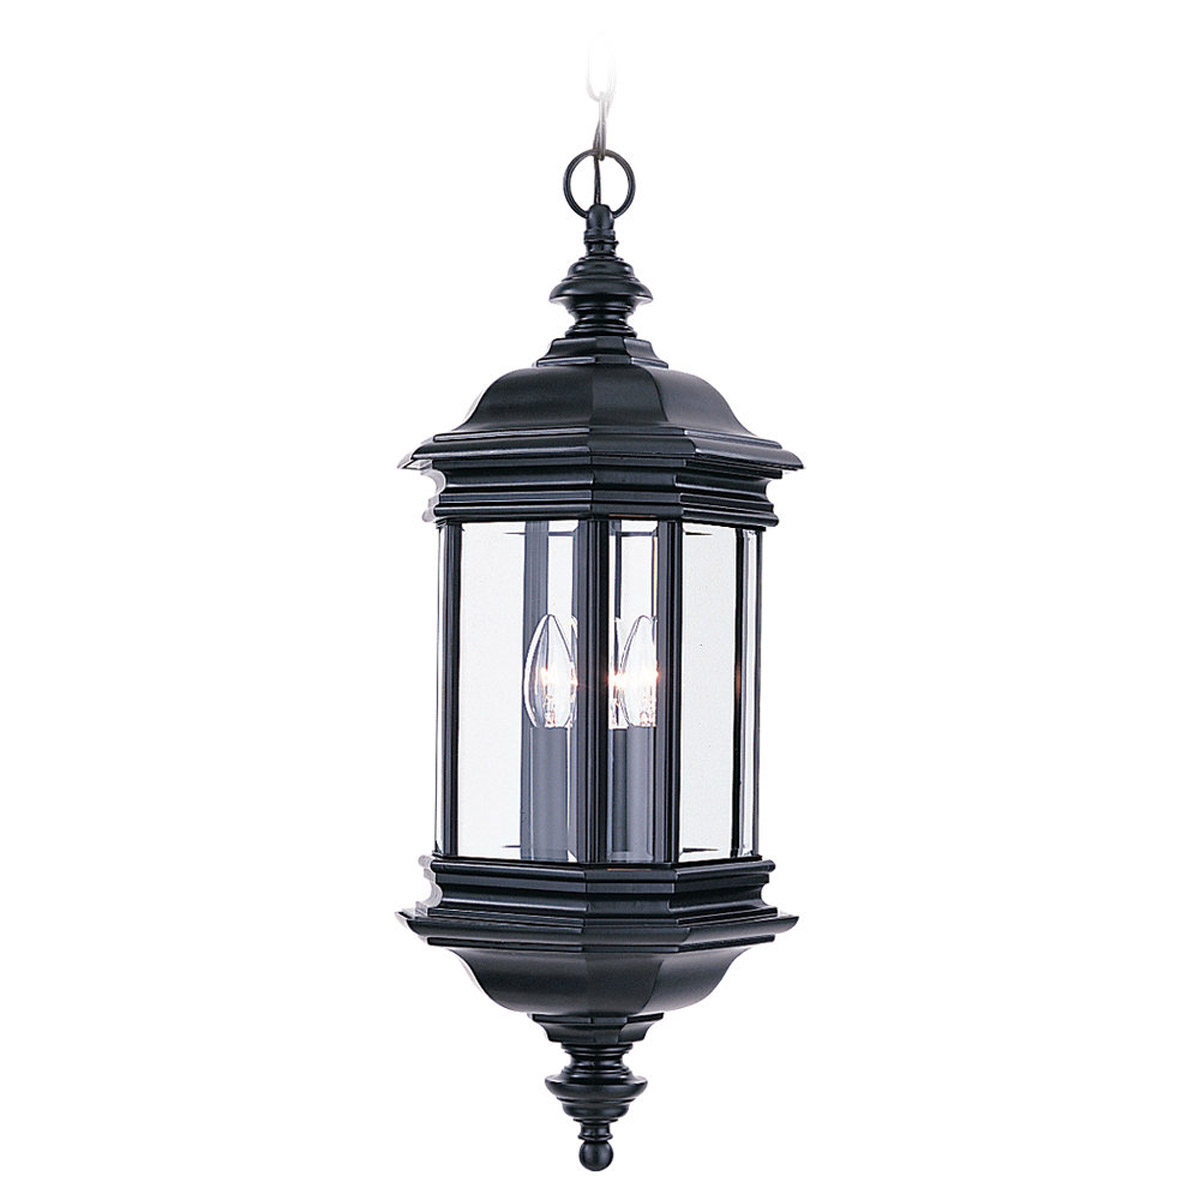 Sea Gull Lighting Hill Gate 3 Light Outdoor Pendant in Black 6637-12